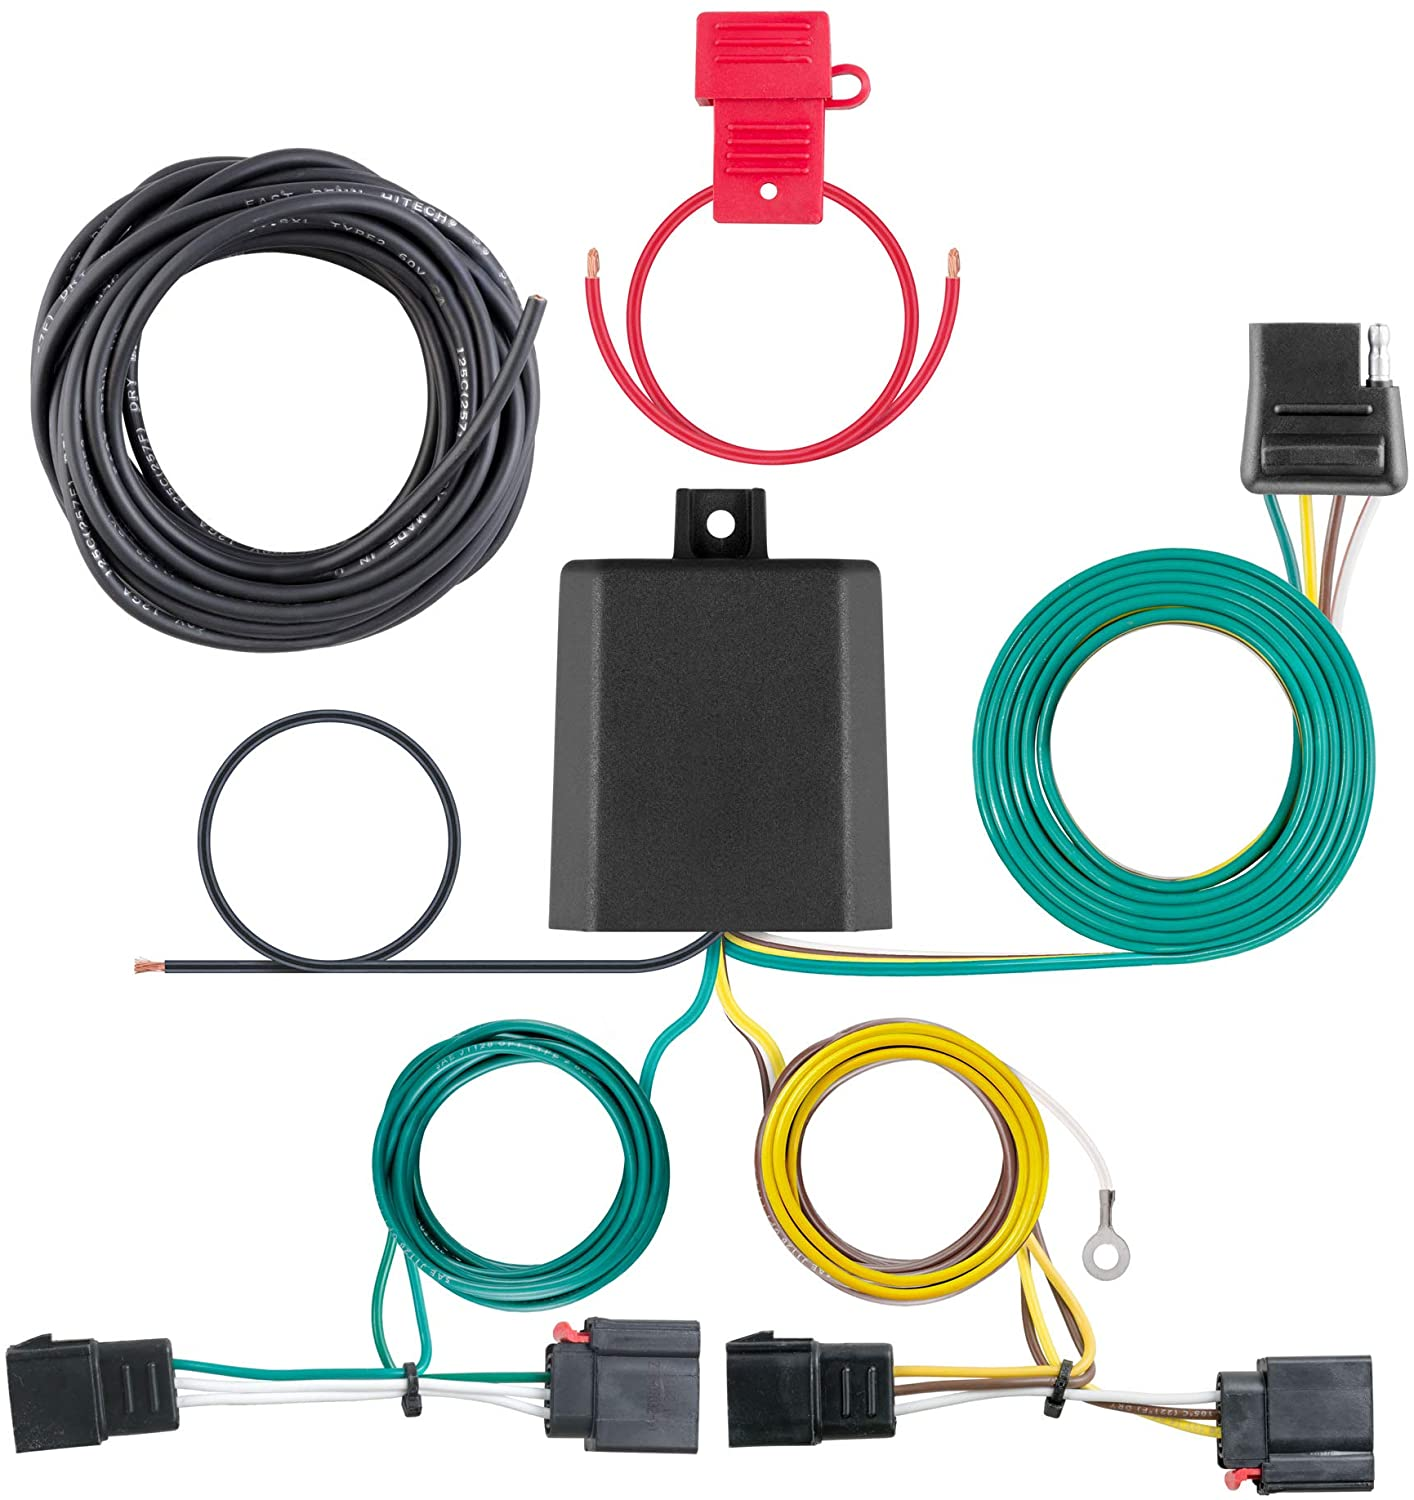 CURT 56230 Vehicle-Side Custom 4-Pin Trailer Wiring Harness for Select Dodge Challenger